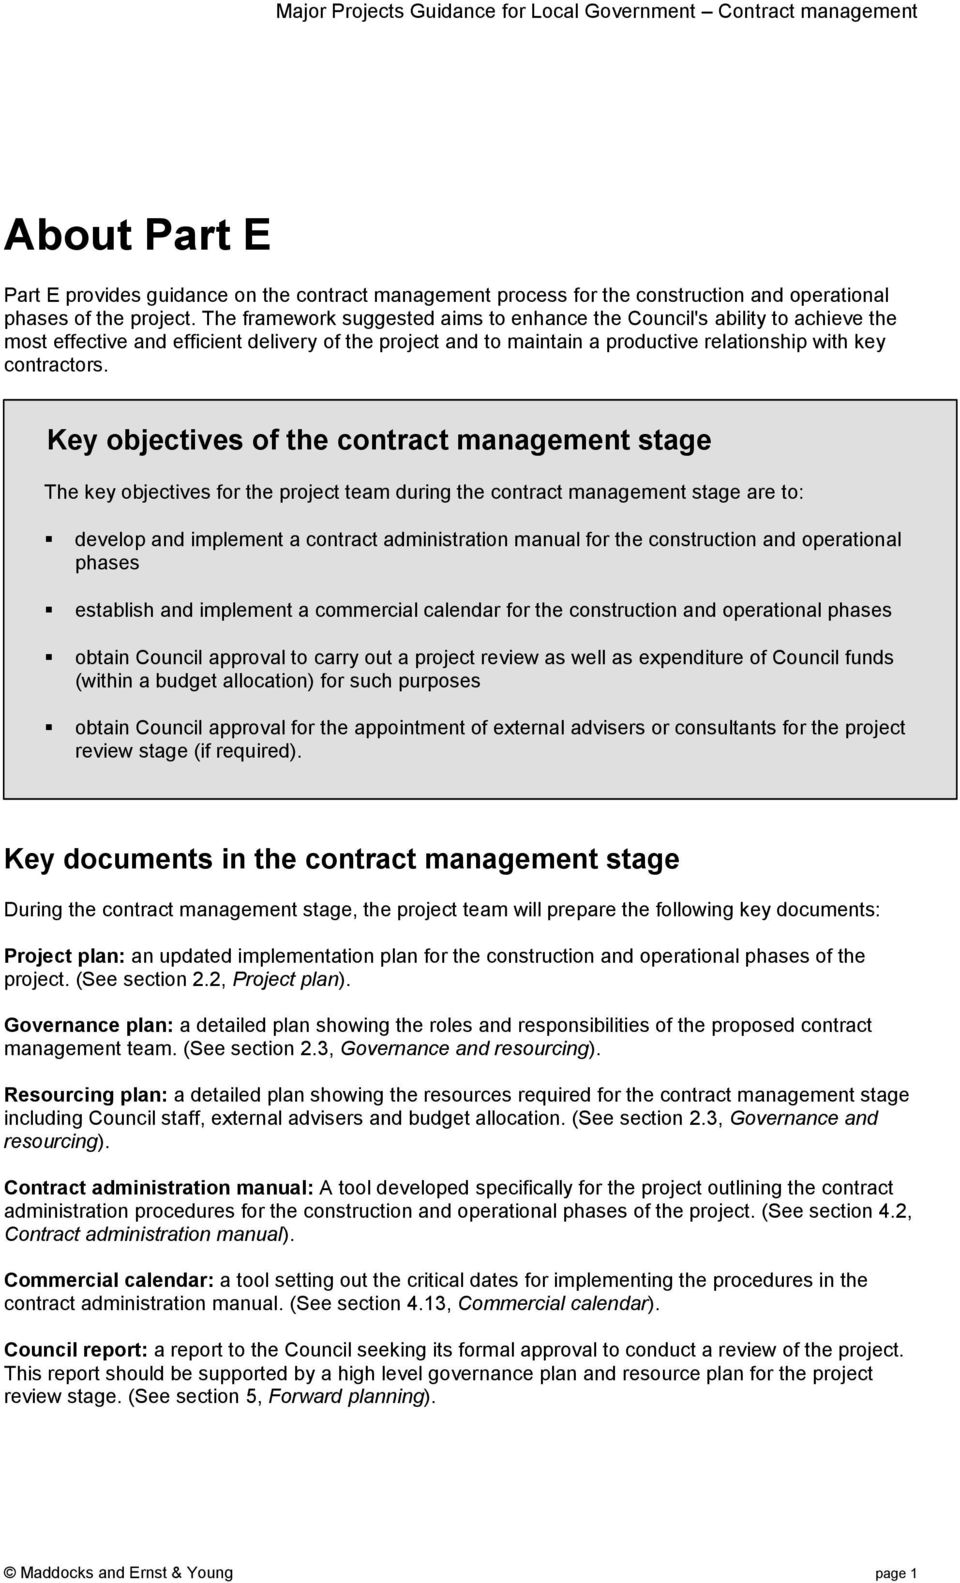 Key objectives of the contract management stage The key objectives for the project team during the contract management stage are to: develop and implement a contract administration manual for the